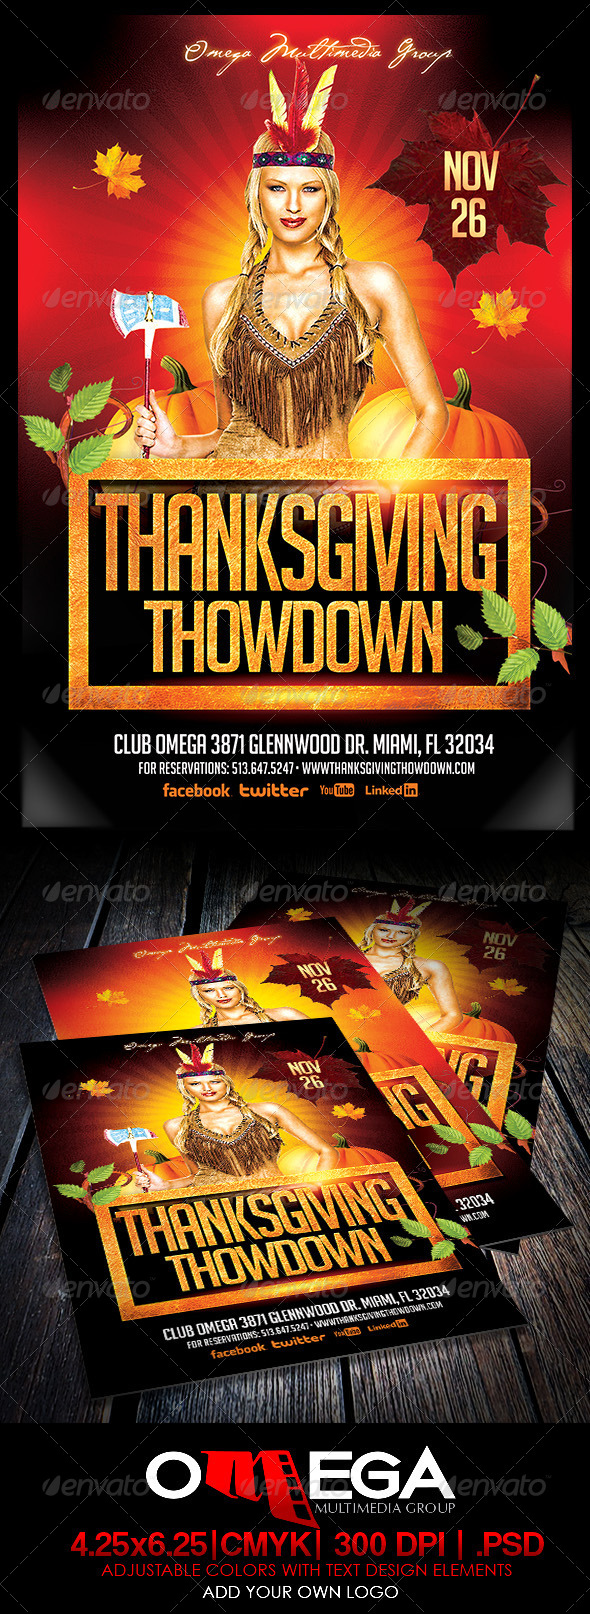 GraphicRiver Thanksgiving Thodown 5841758